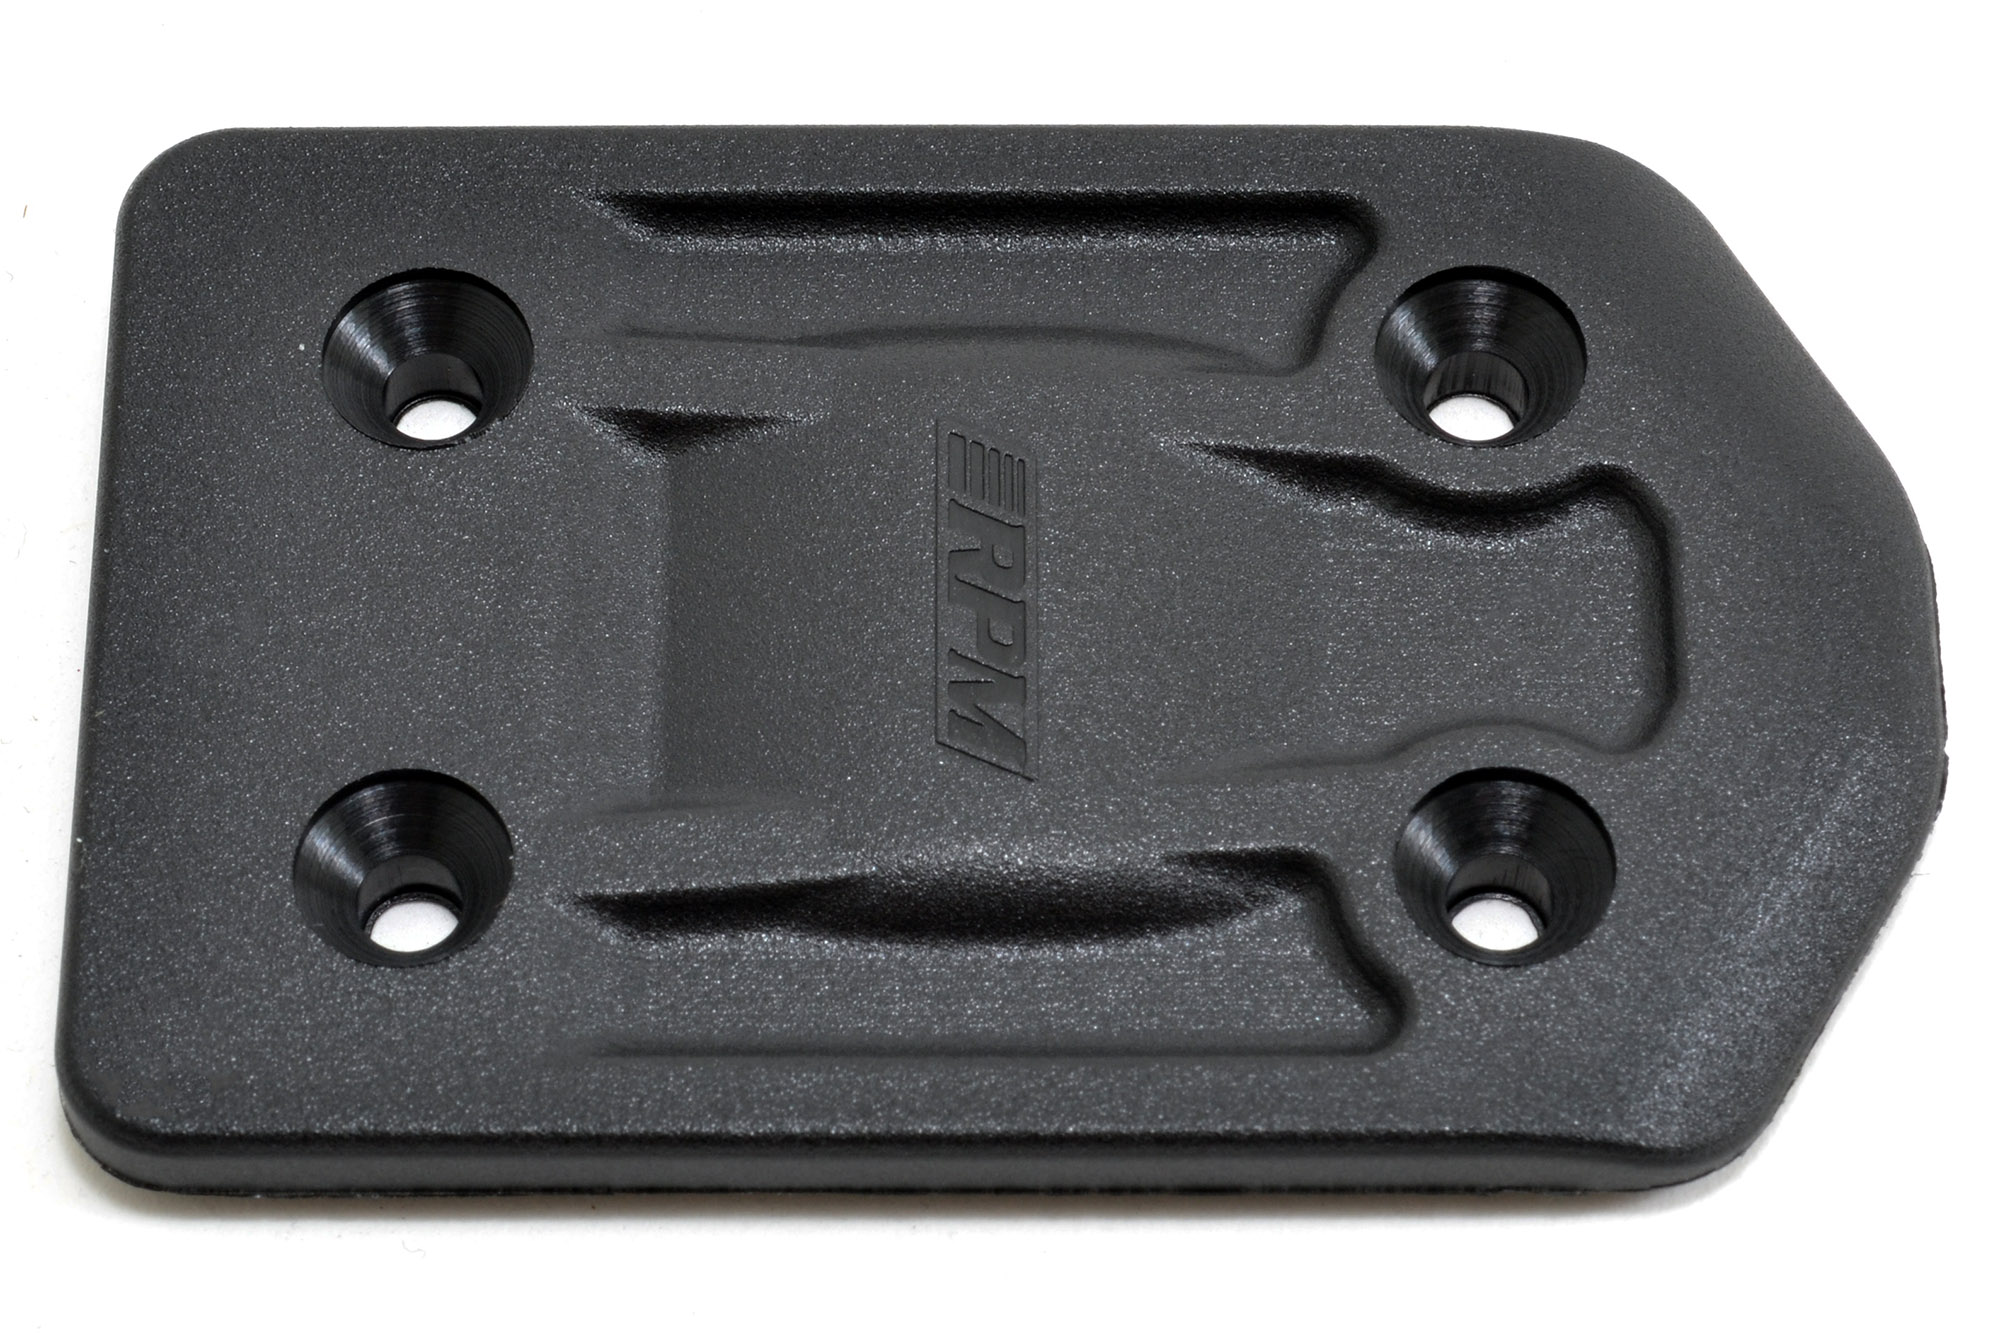 81332 - Rear Skid Plate for ARRMA 6S Vehicles